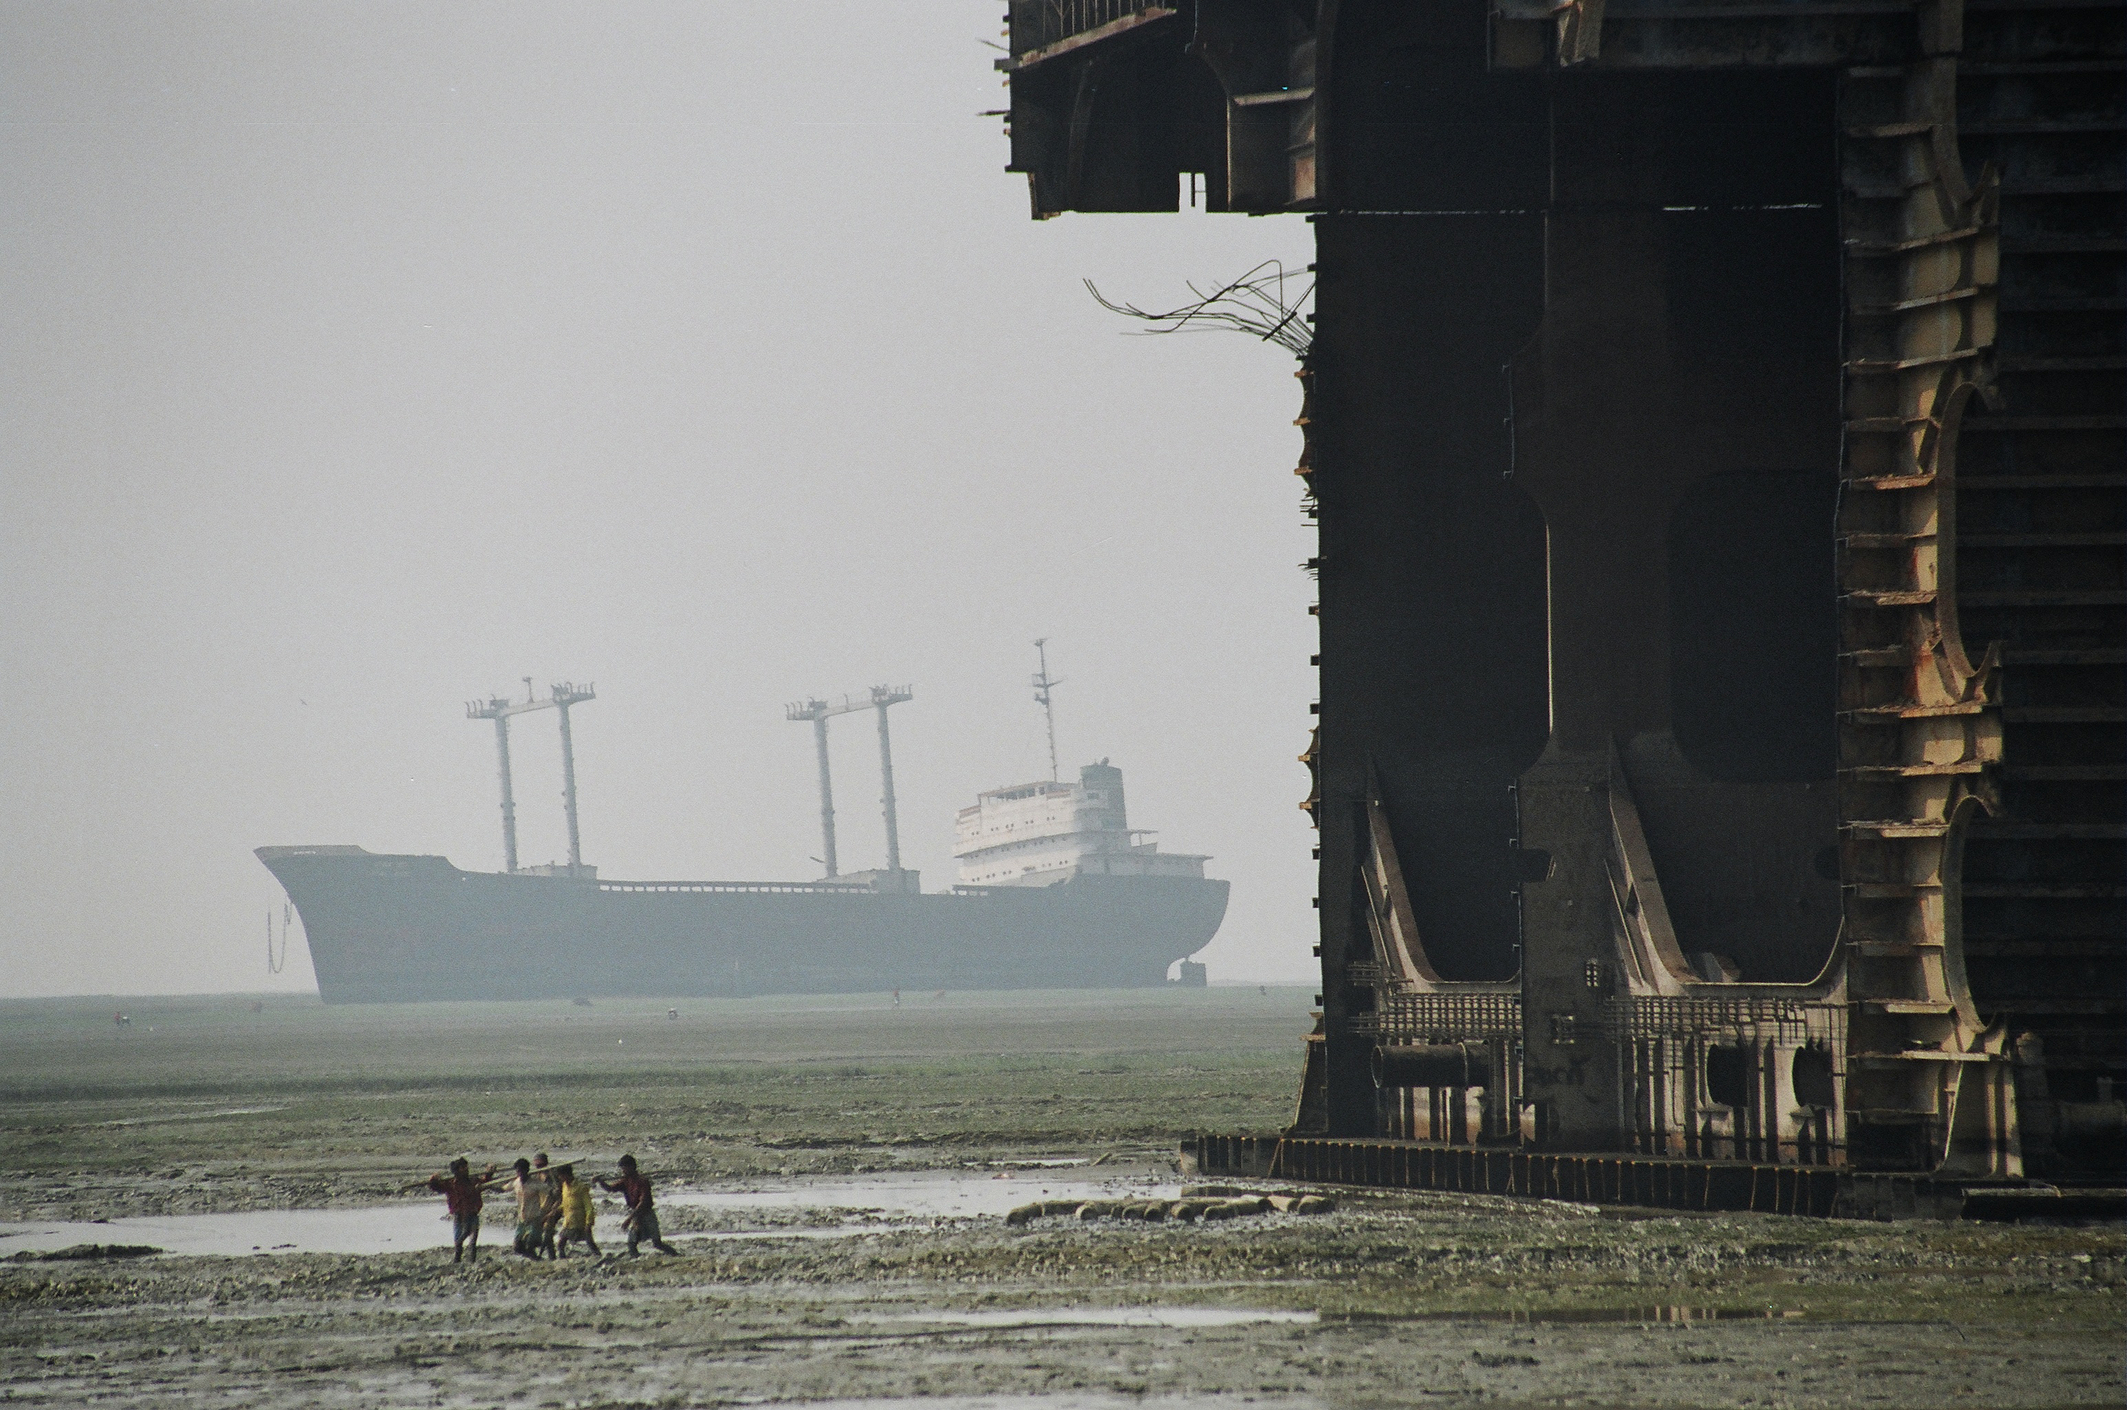 Surging steel price boosts scrap value of redundant containerships ...